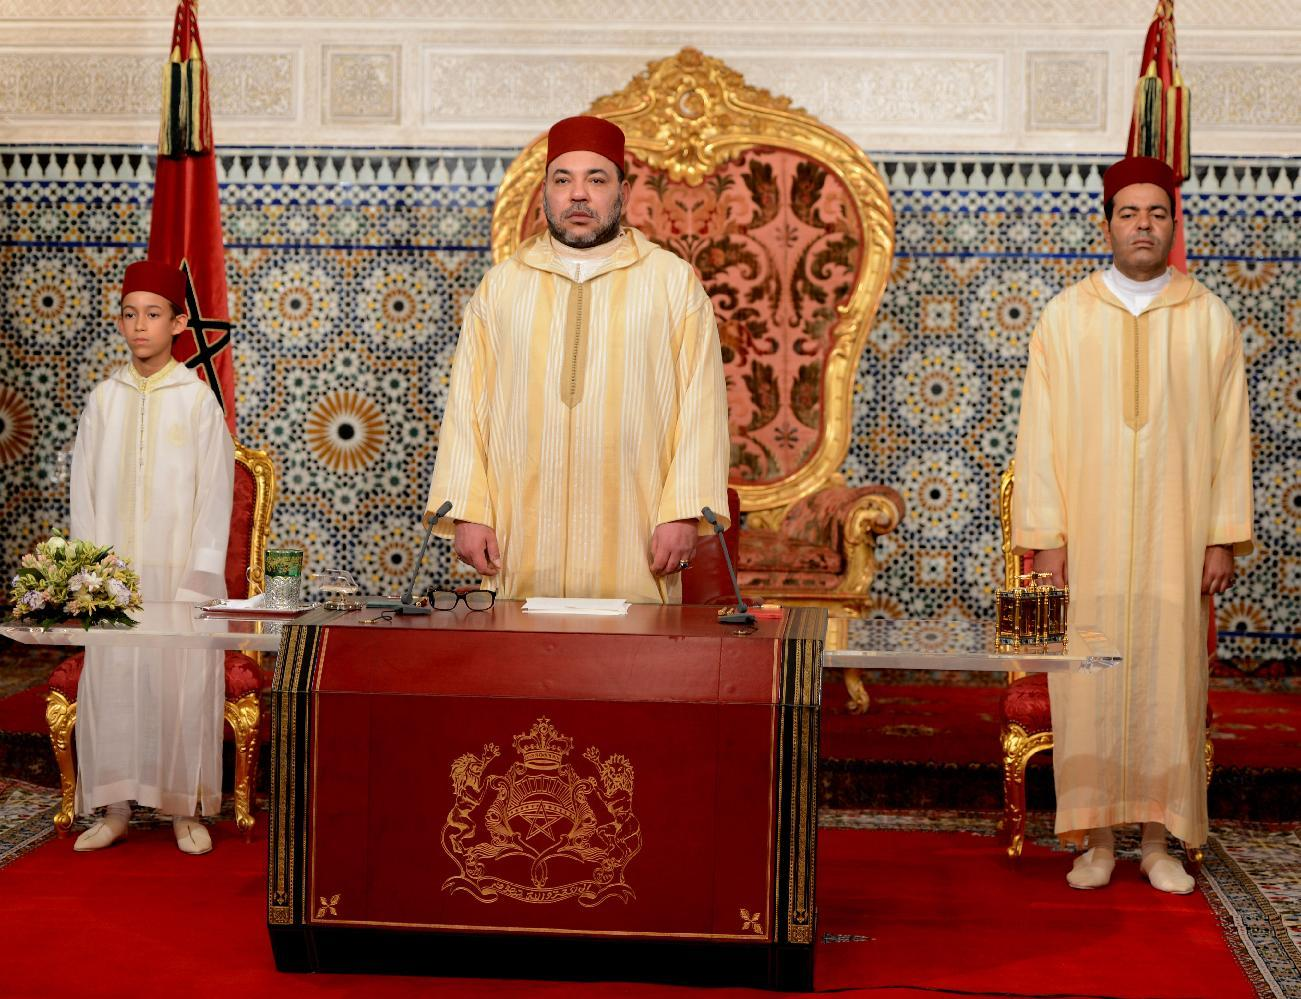 A handout picture released by the Moroccan Royal Palace shows Morocco's King Mohammed VI (C) delivering a speech marking the 15th anniversary of his coronation, on July 30, 2014, in Rabat